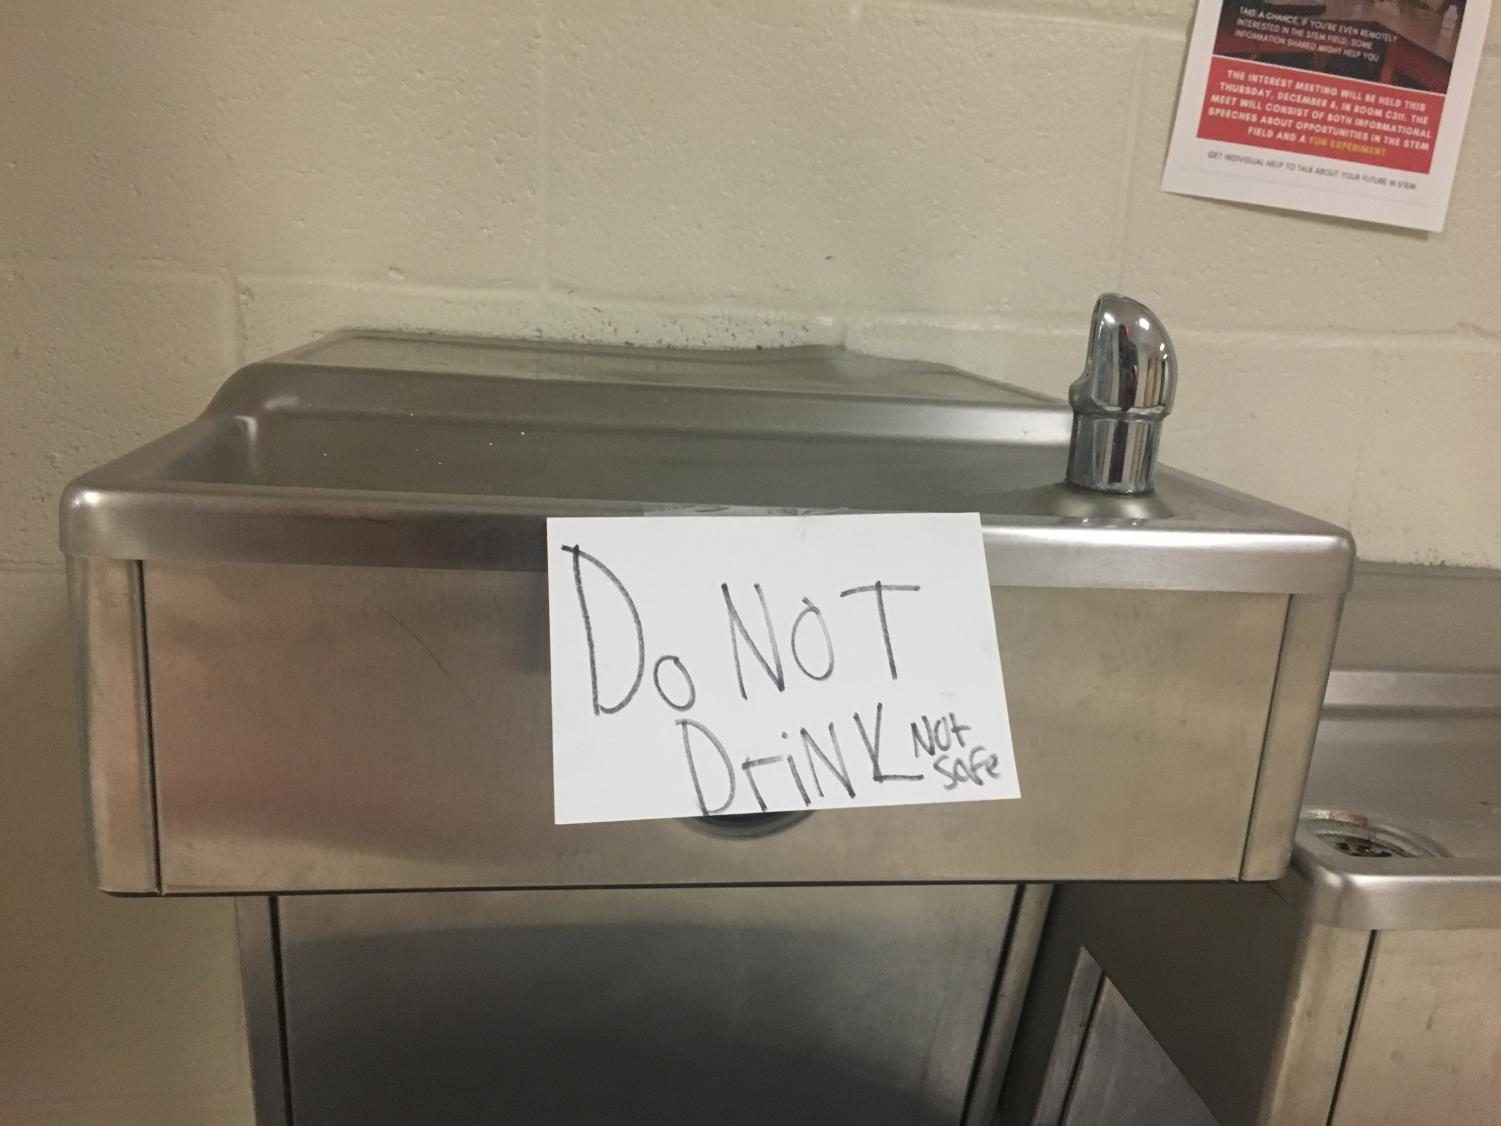 Students are barred from using school water fountains.